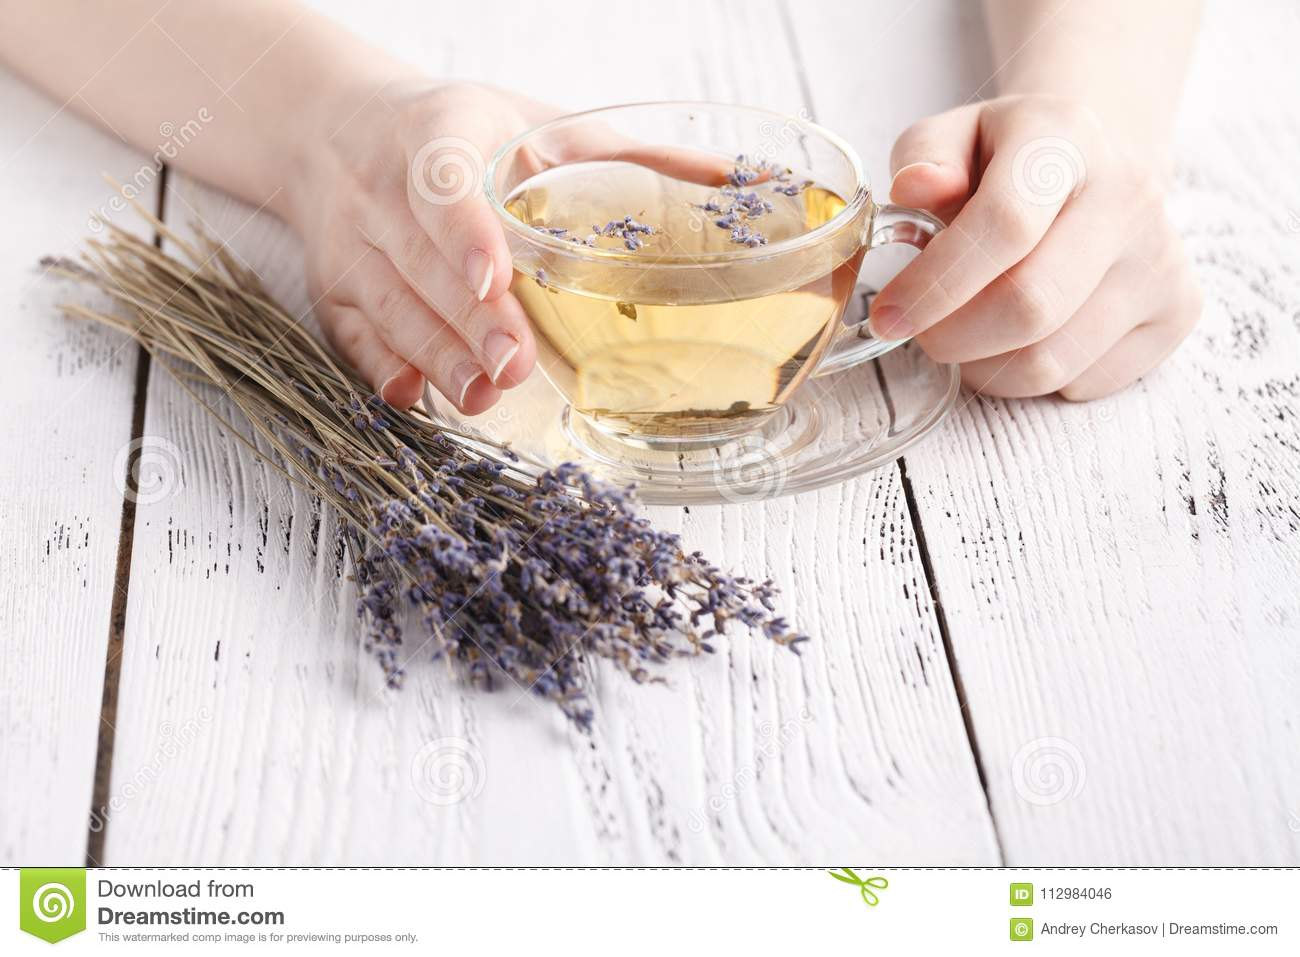 Aromatic herbal tea in glass cup holding female hands